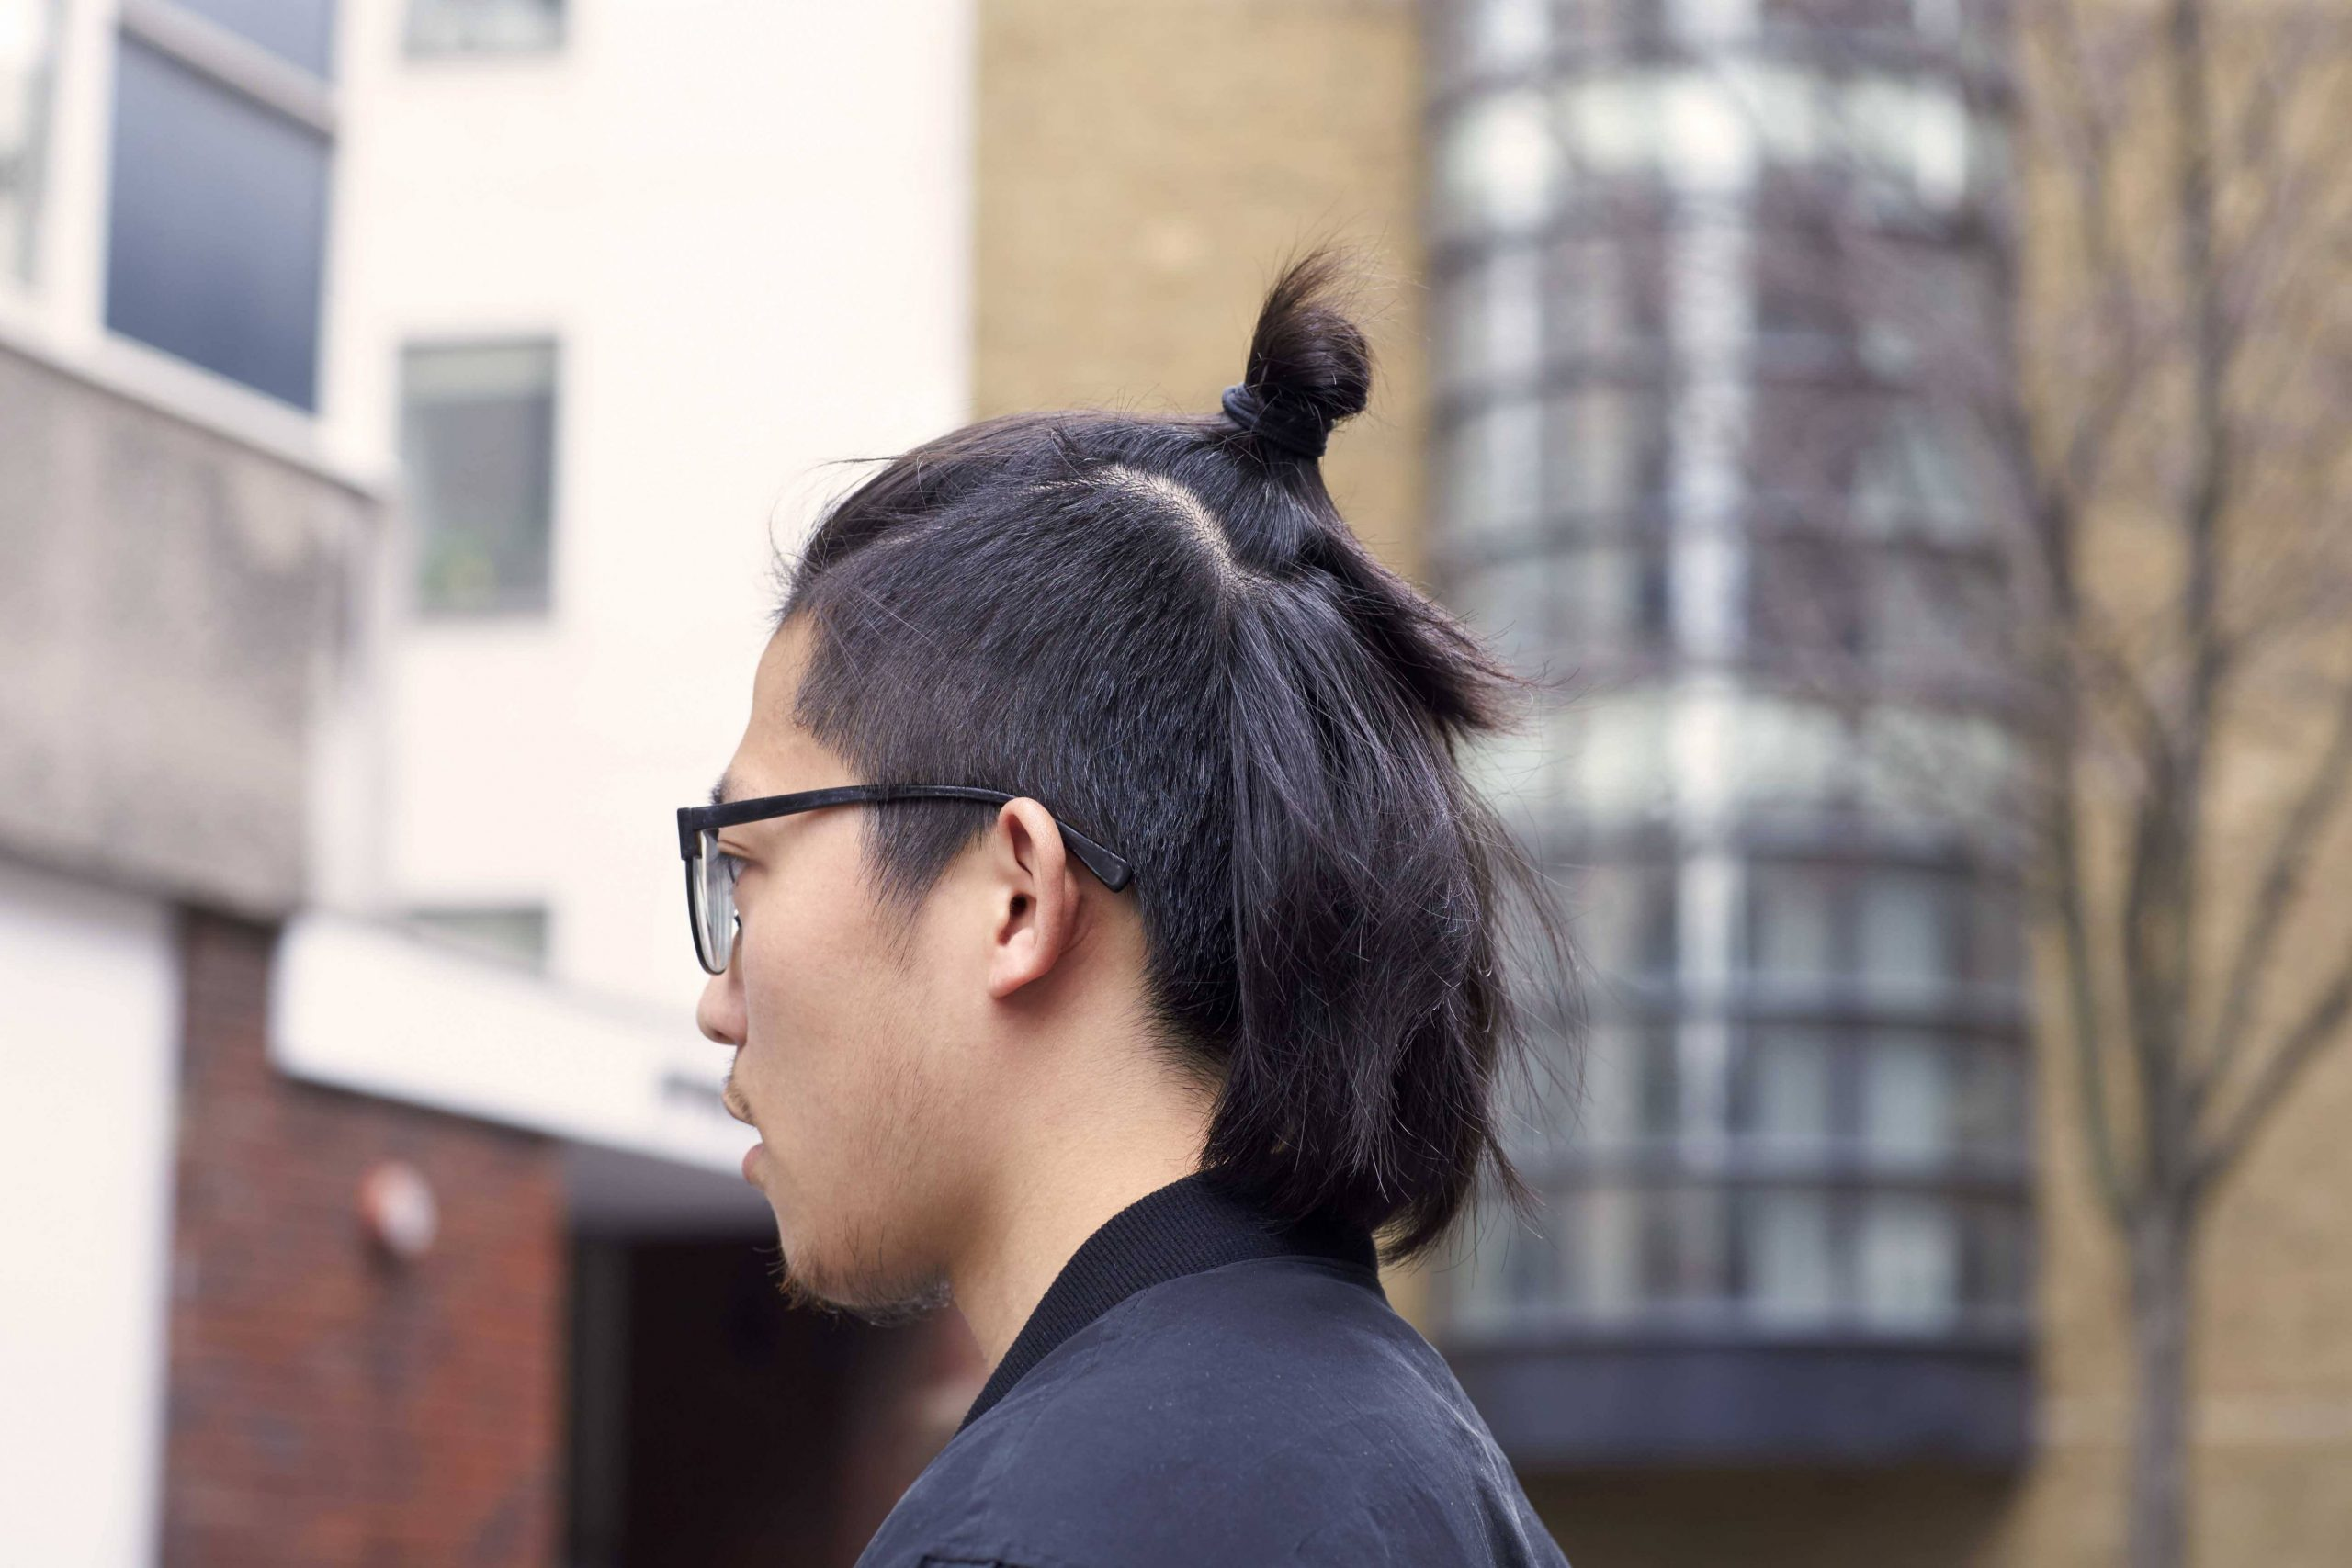 How to pull off the Mohawk hairstyle: 8 Tips and tricks